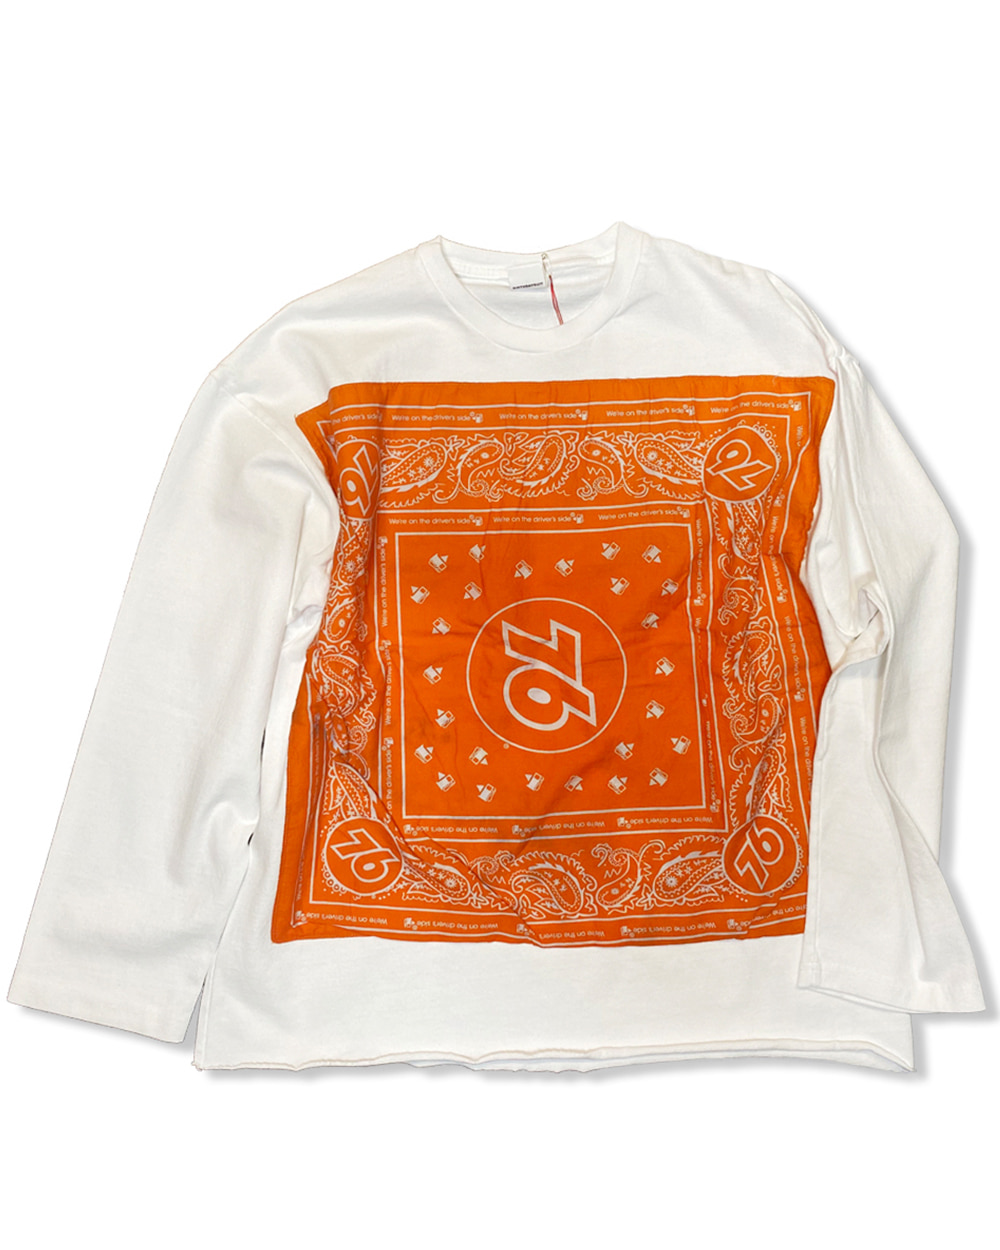 벌스데이수트 Vintage Bandana Long Sleeve (White)_TYPE 4